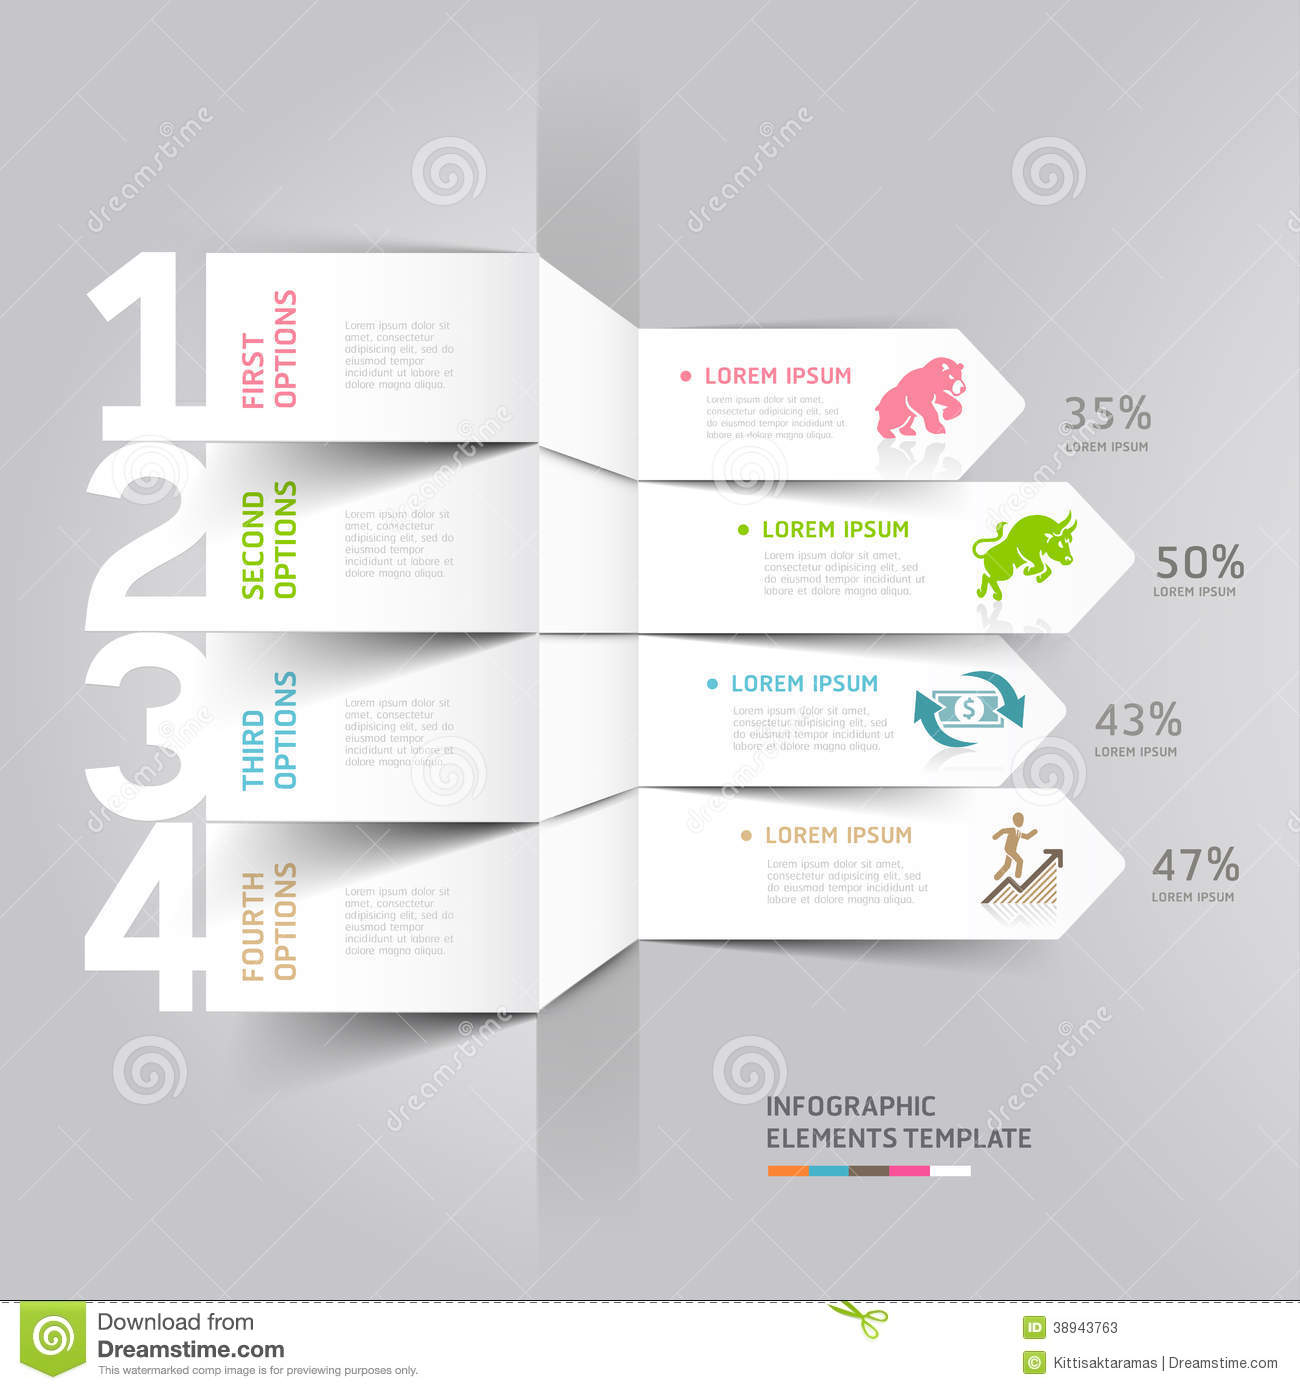 business-finance-stock-exchange-infographics-numbers-vector-illustration-38943763.jpg